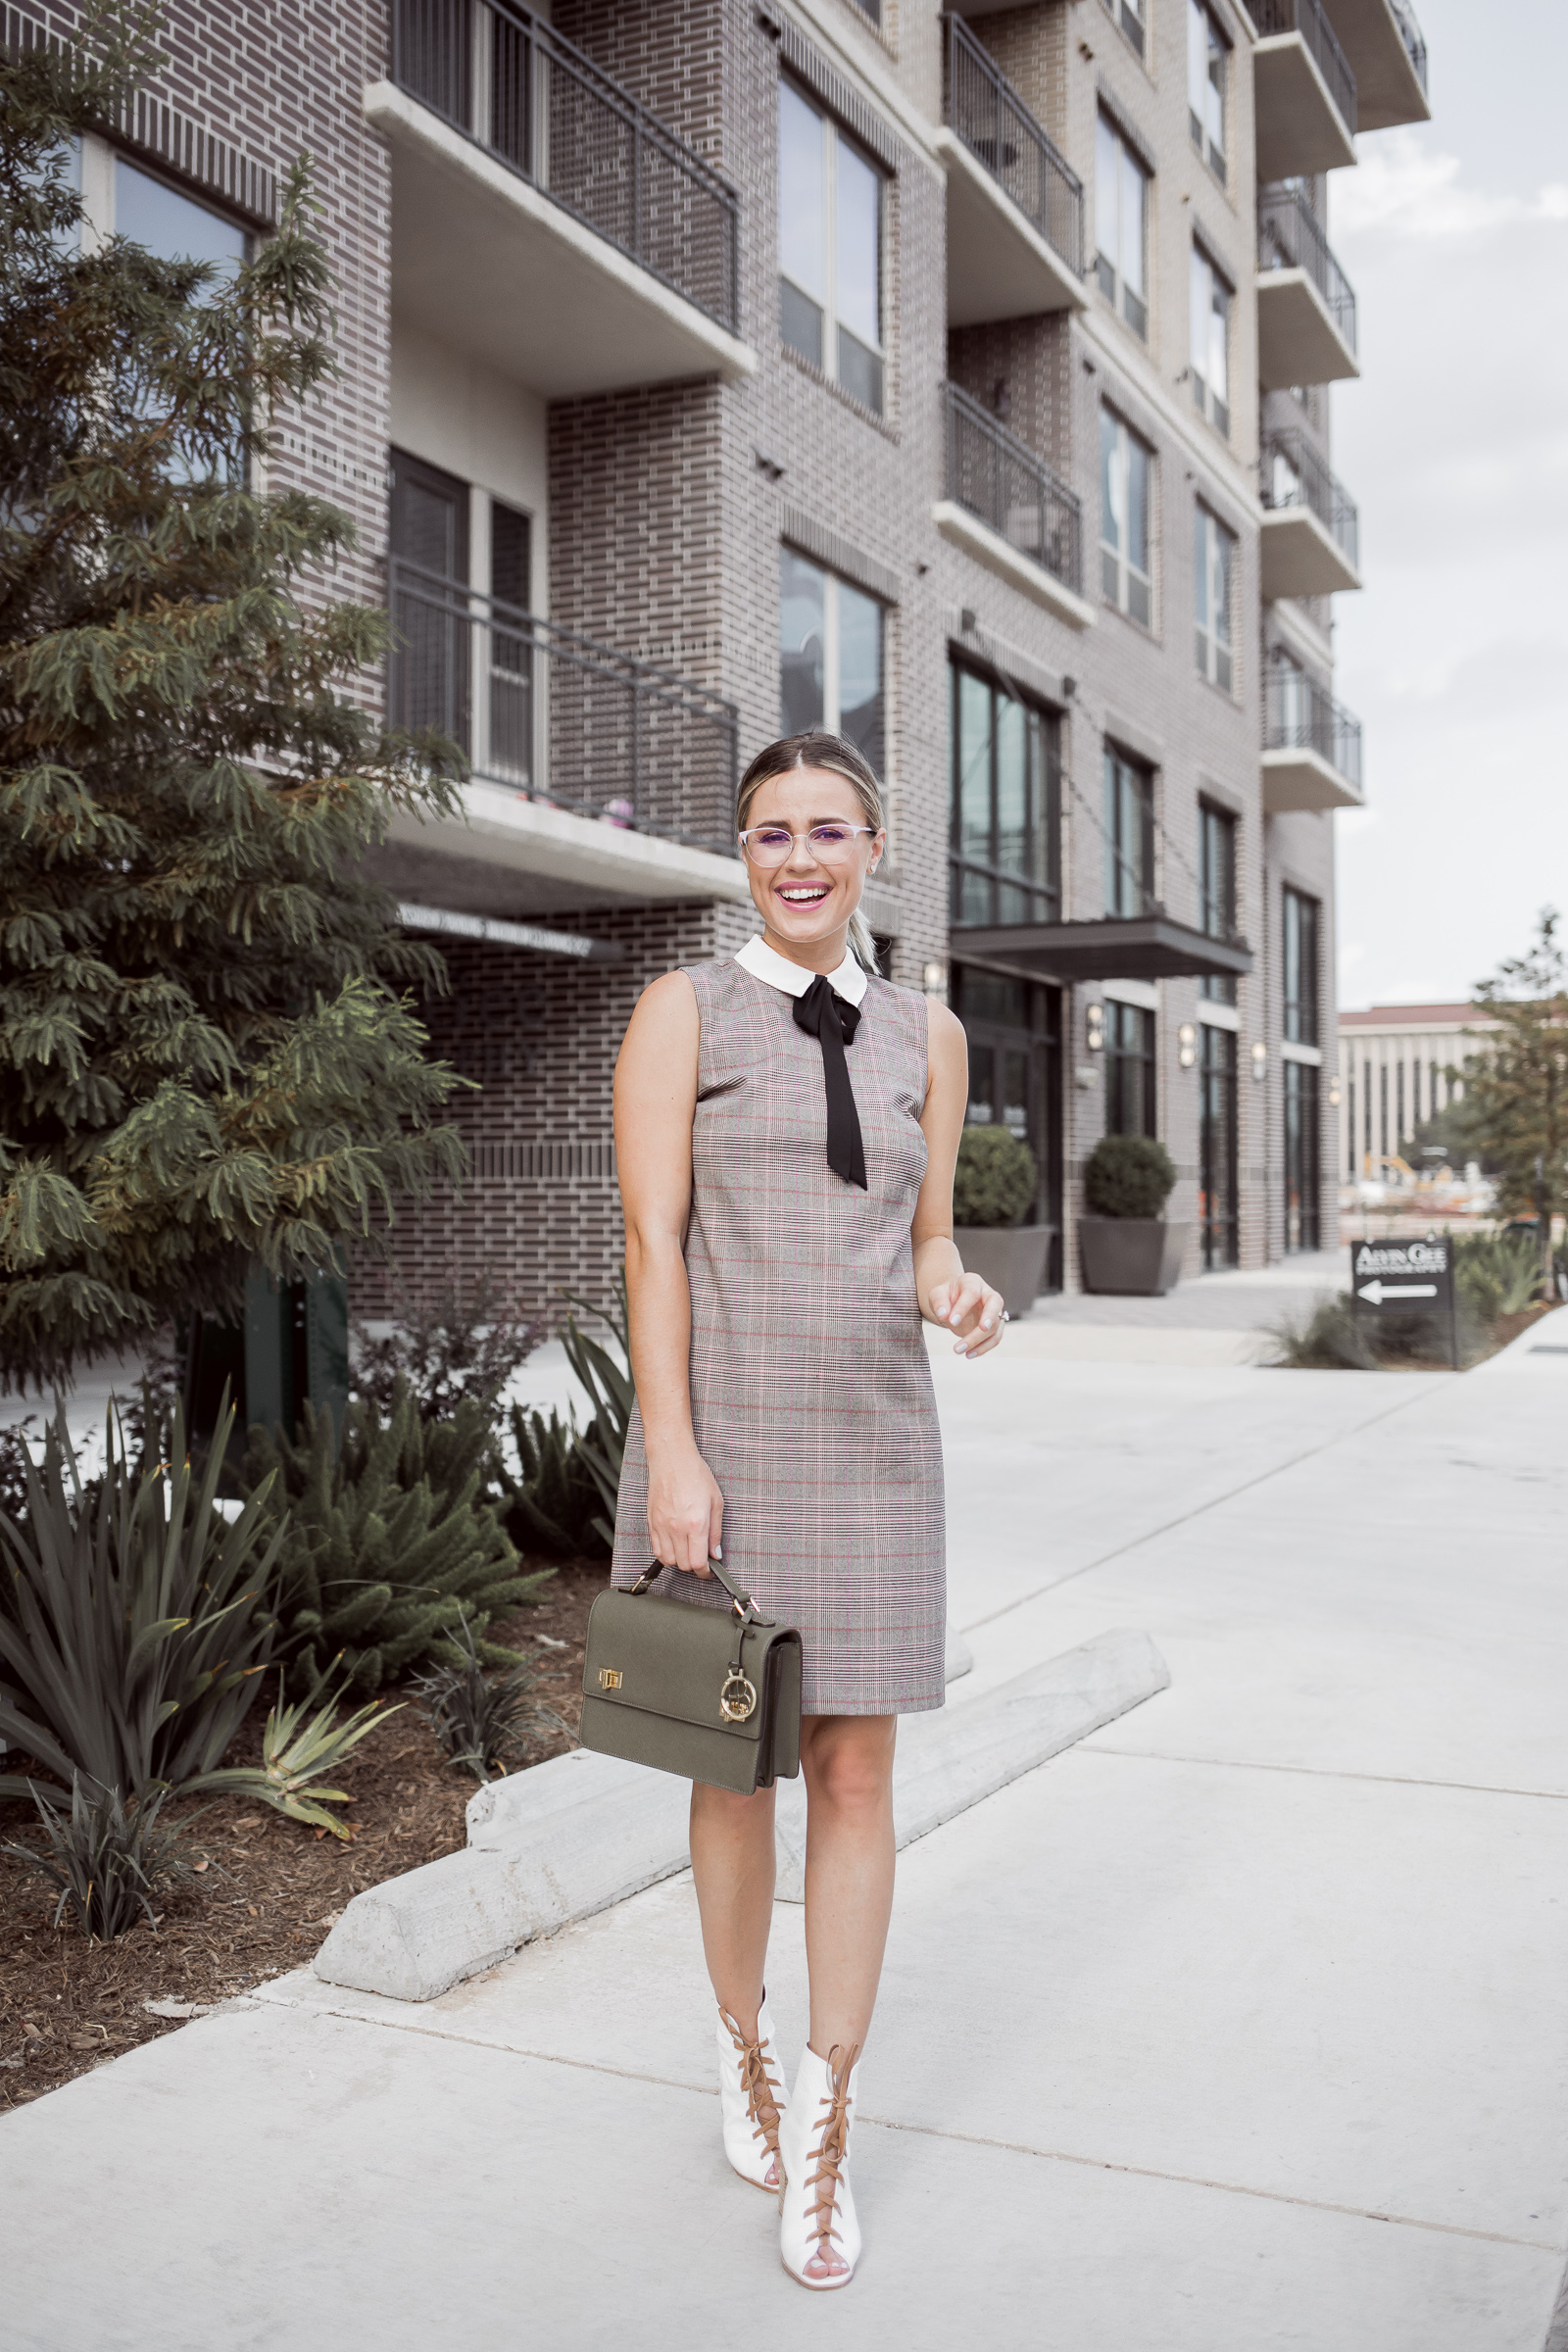 Houston Fashion blogger Uptown with Elly Brown shares how to wear a Plaid Shift Dress paired with white boots for the fall season.